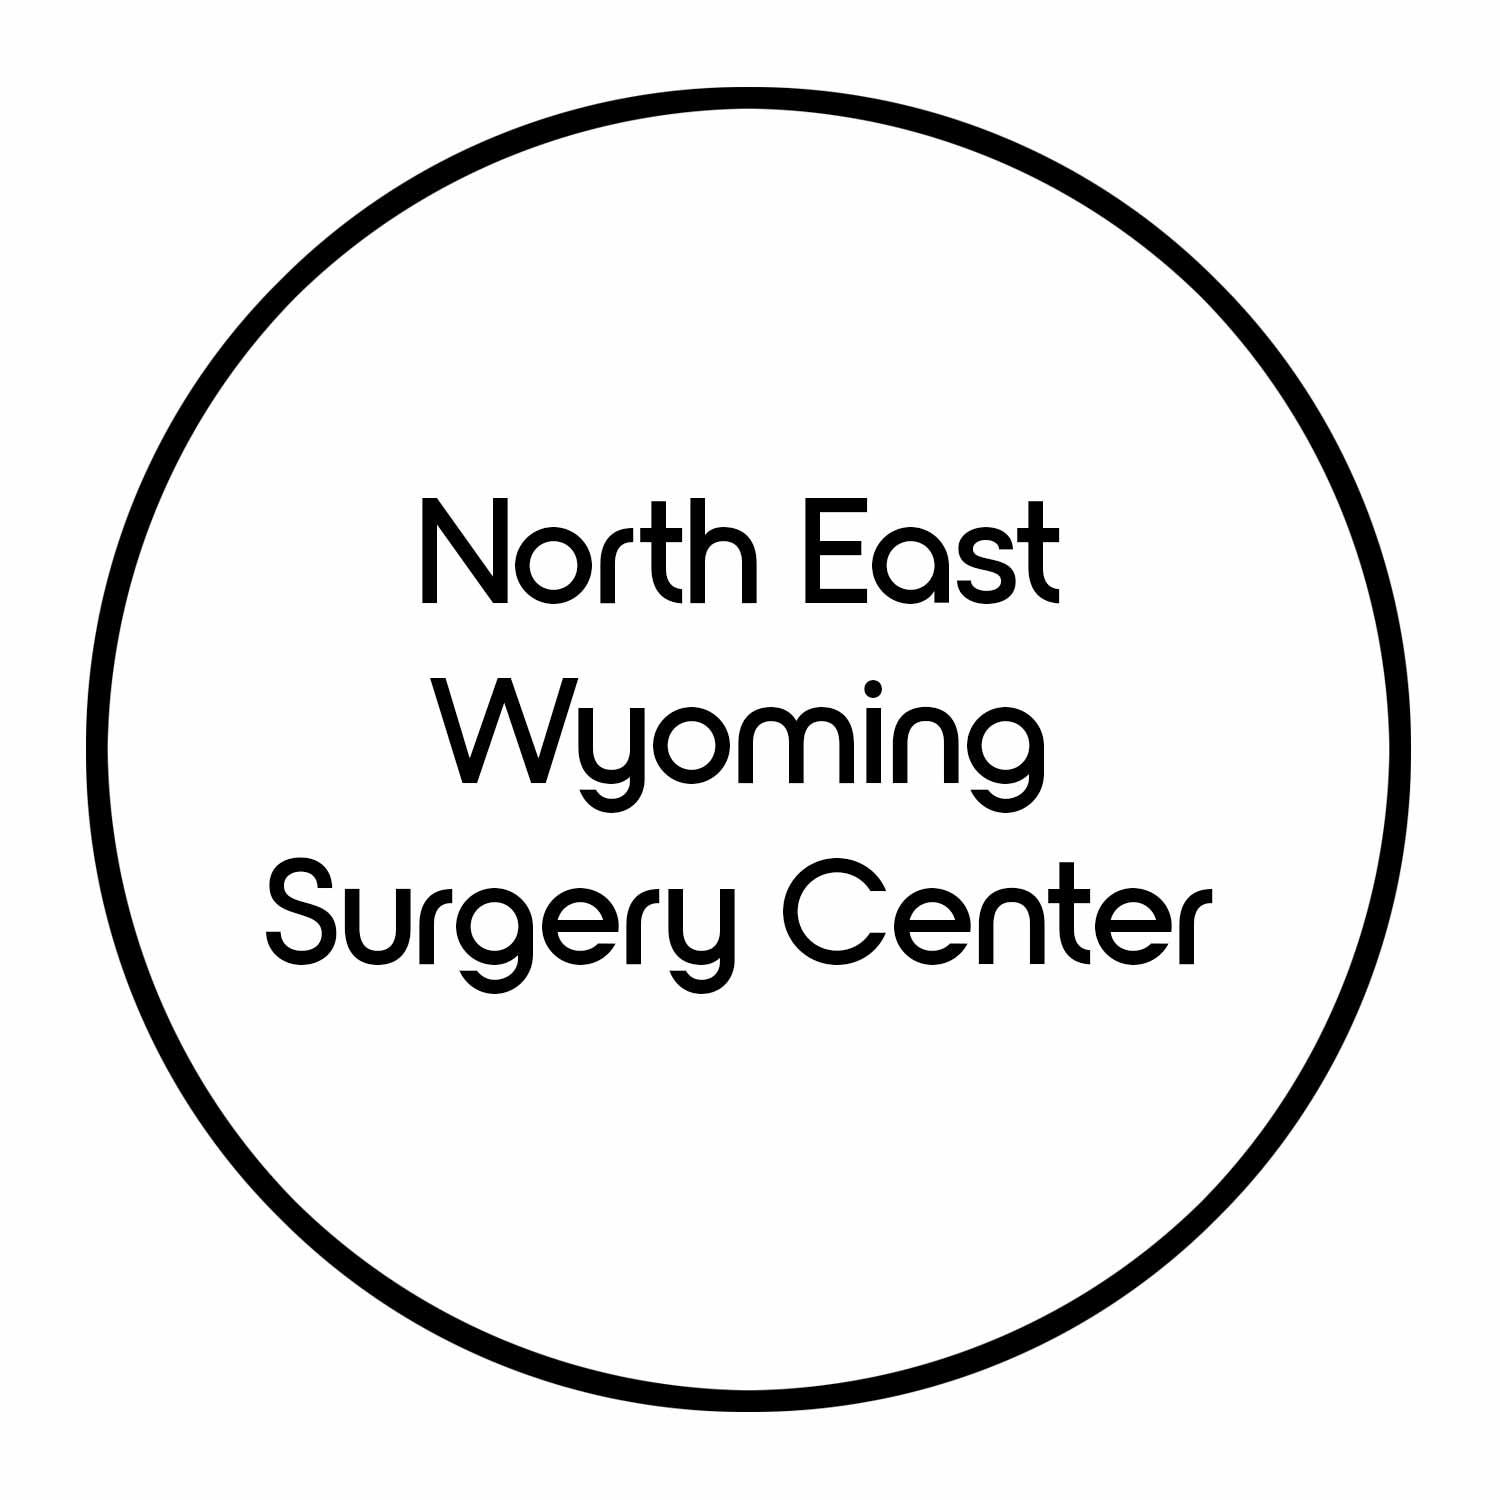 north-east-wyoming-surgery-center-icon.jpg